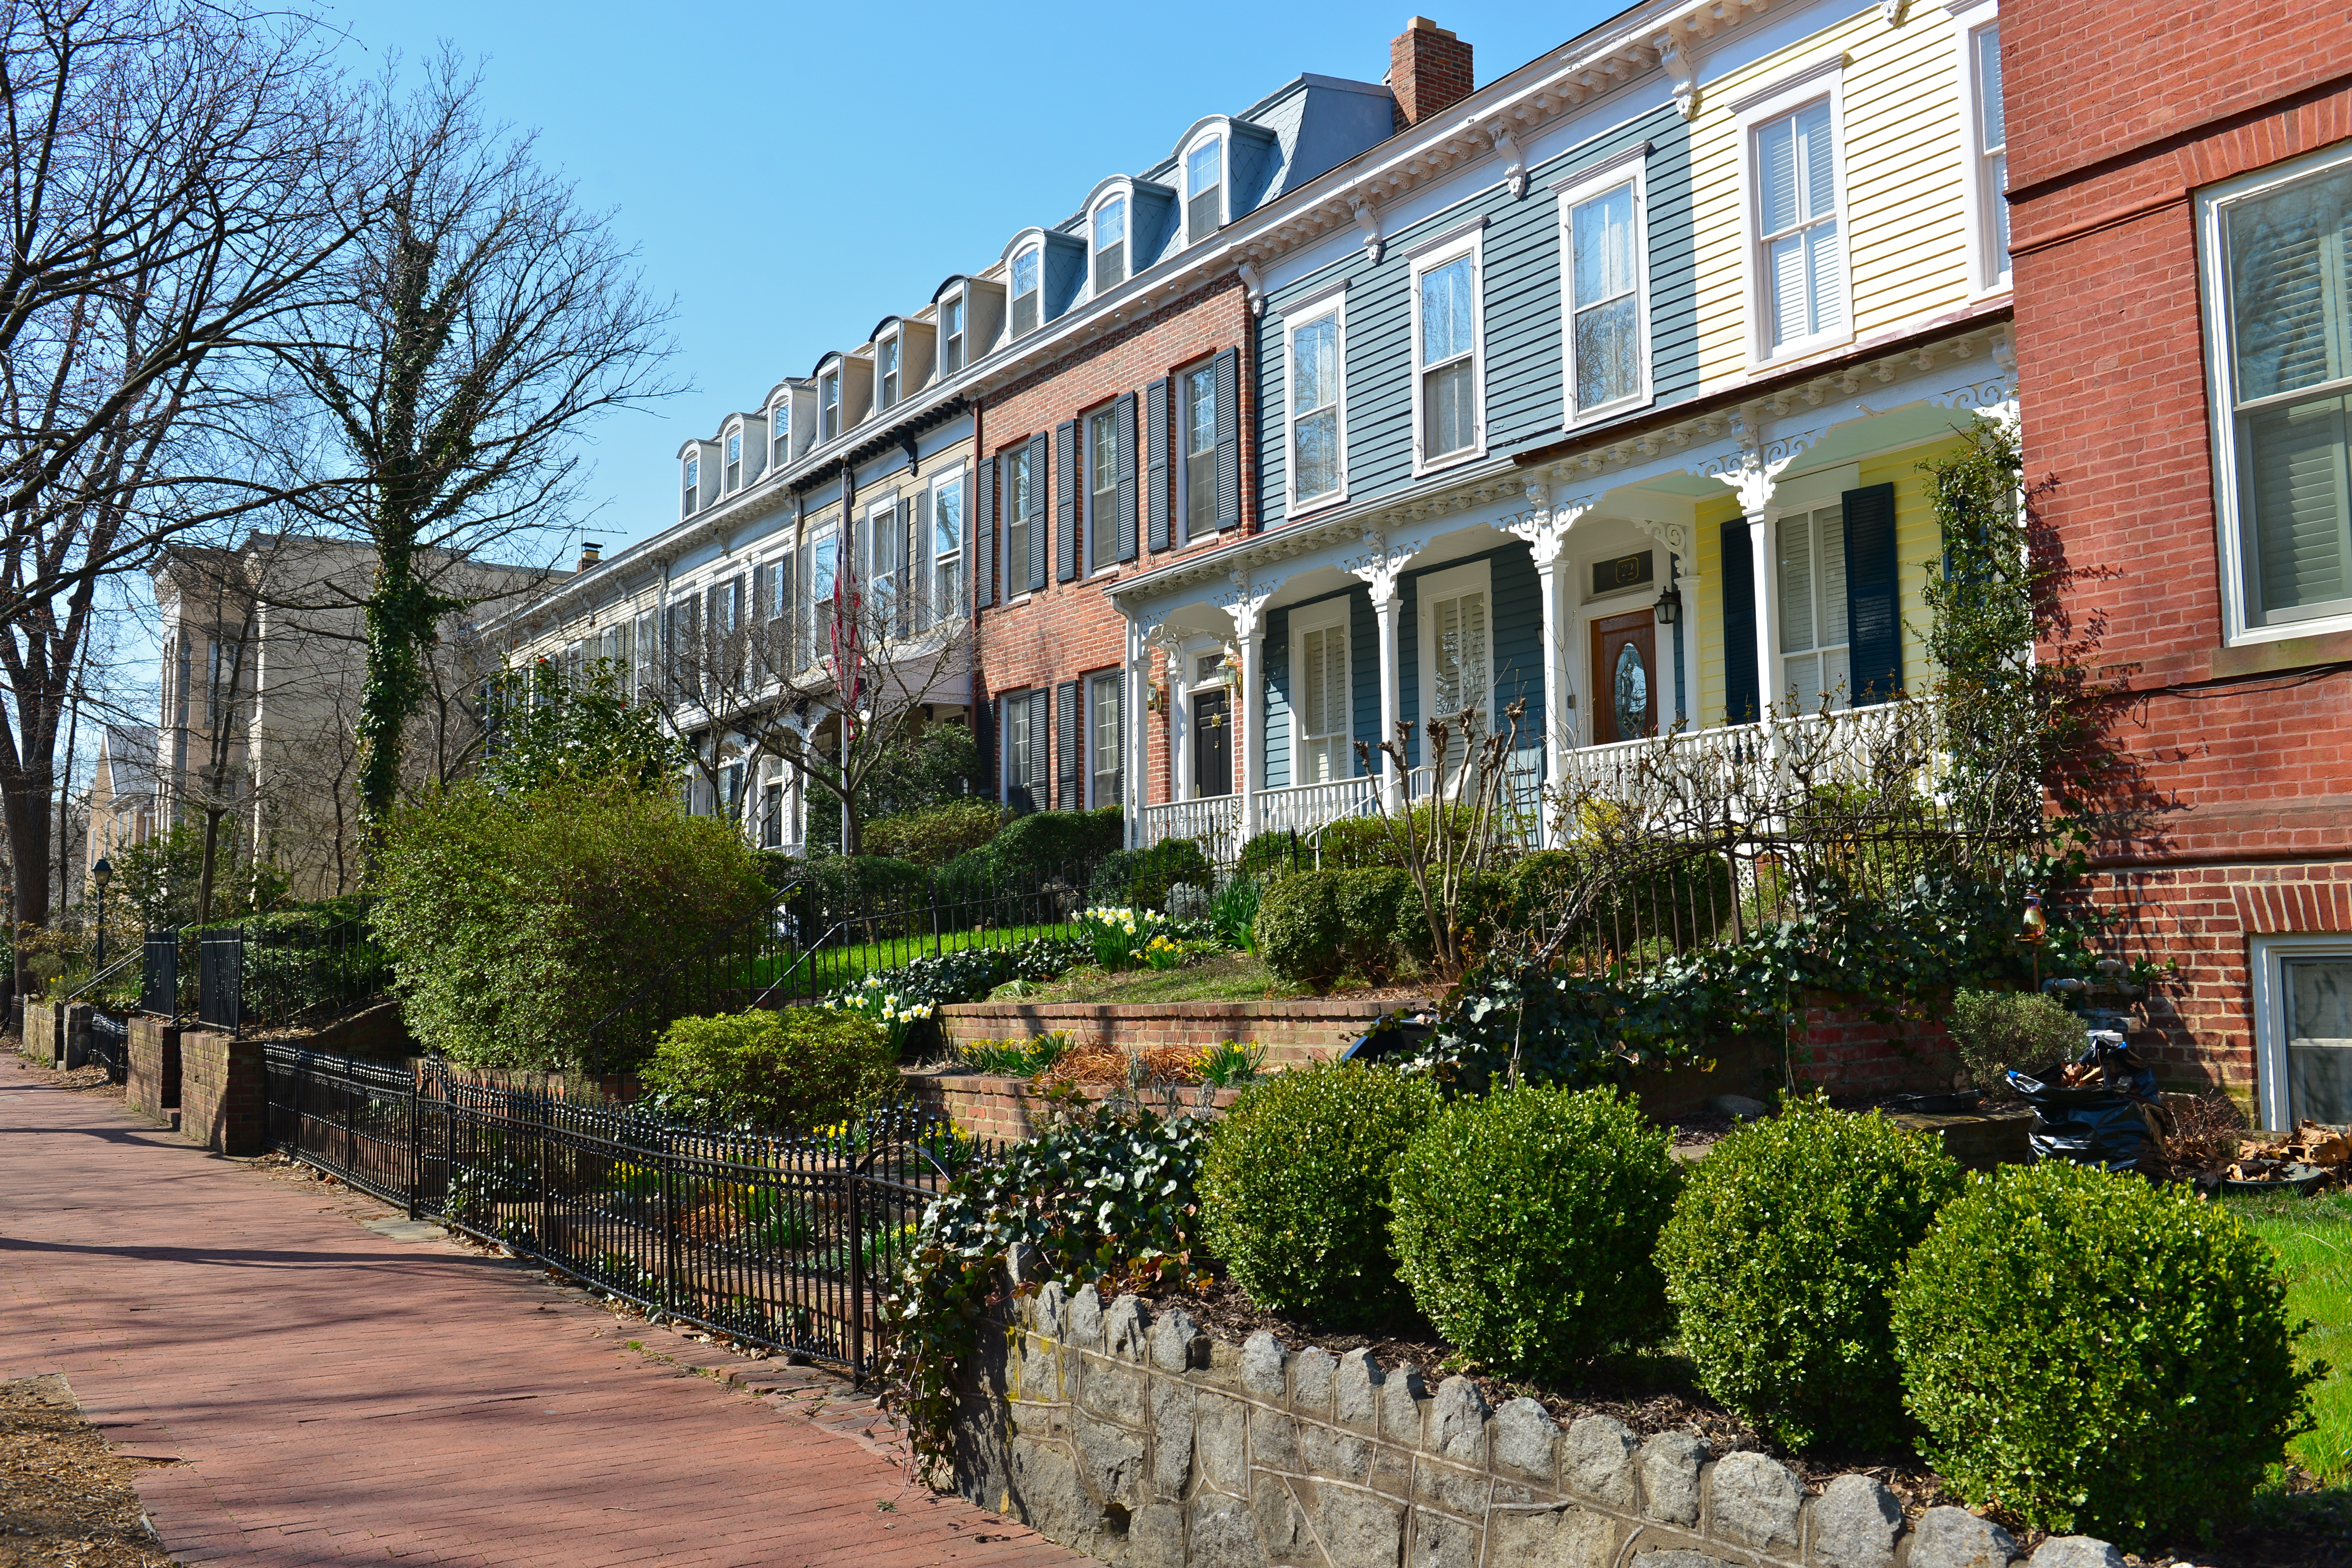 Top 5 We Buy Houses for Cash Companies in Washington, D.C.